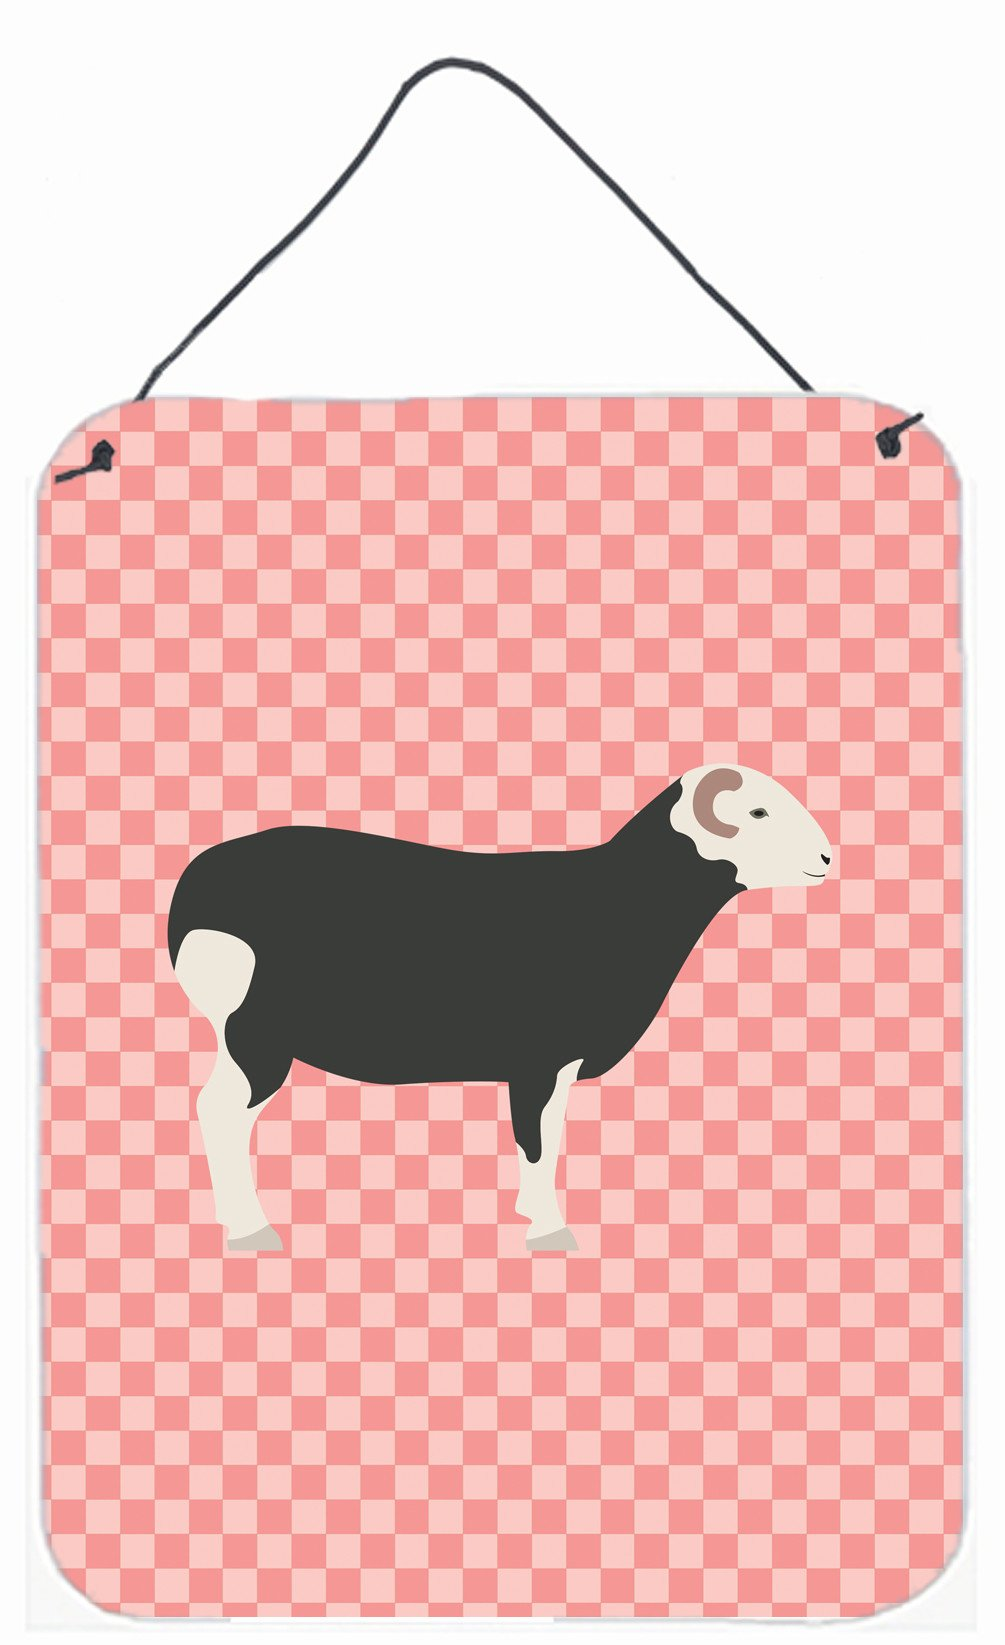 Herwick Sheep Pink Check Wall or Door Hanging Prints BB7970DS1216 by Caroline's Treasures